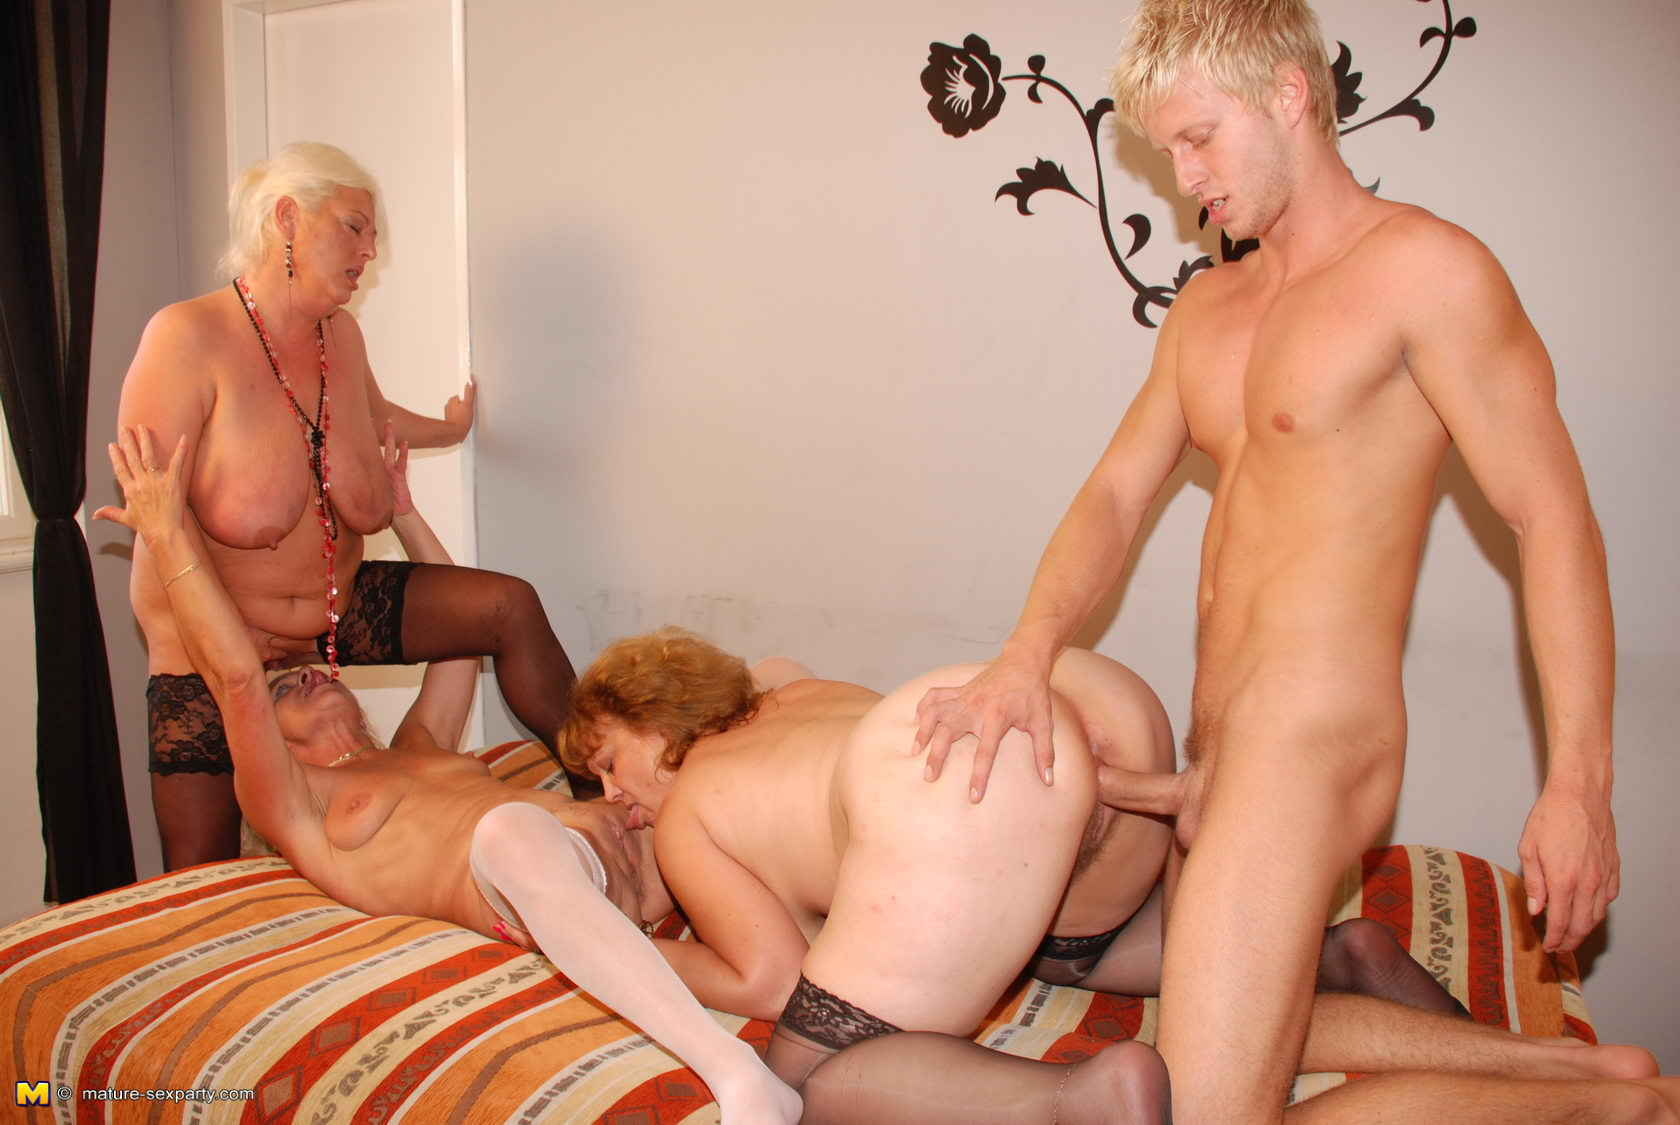 2019 Mmf ejaculation foursome softcore